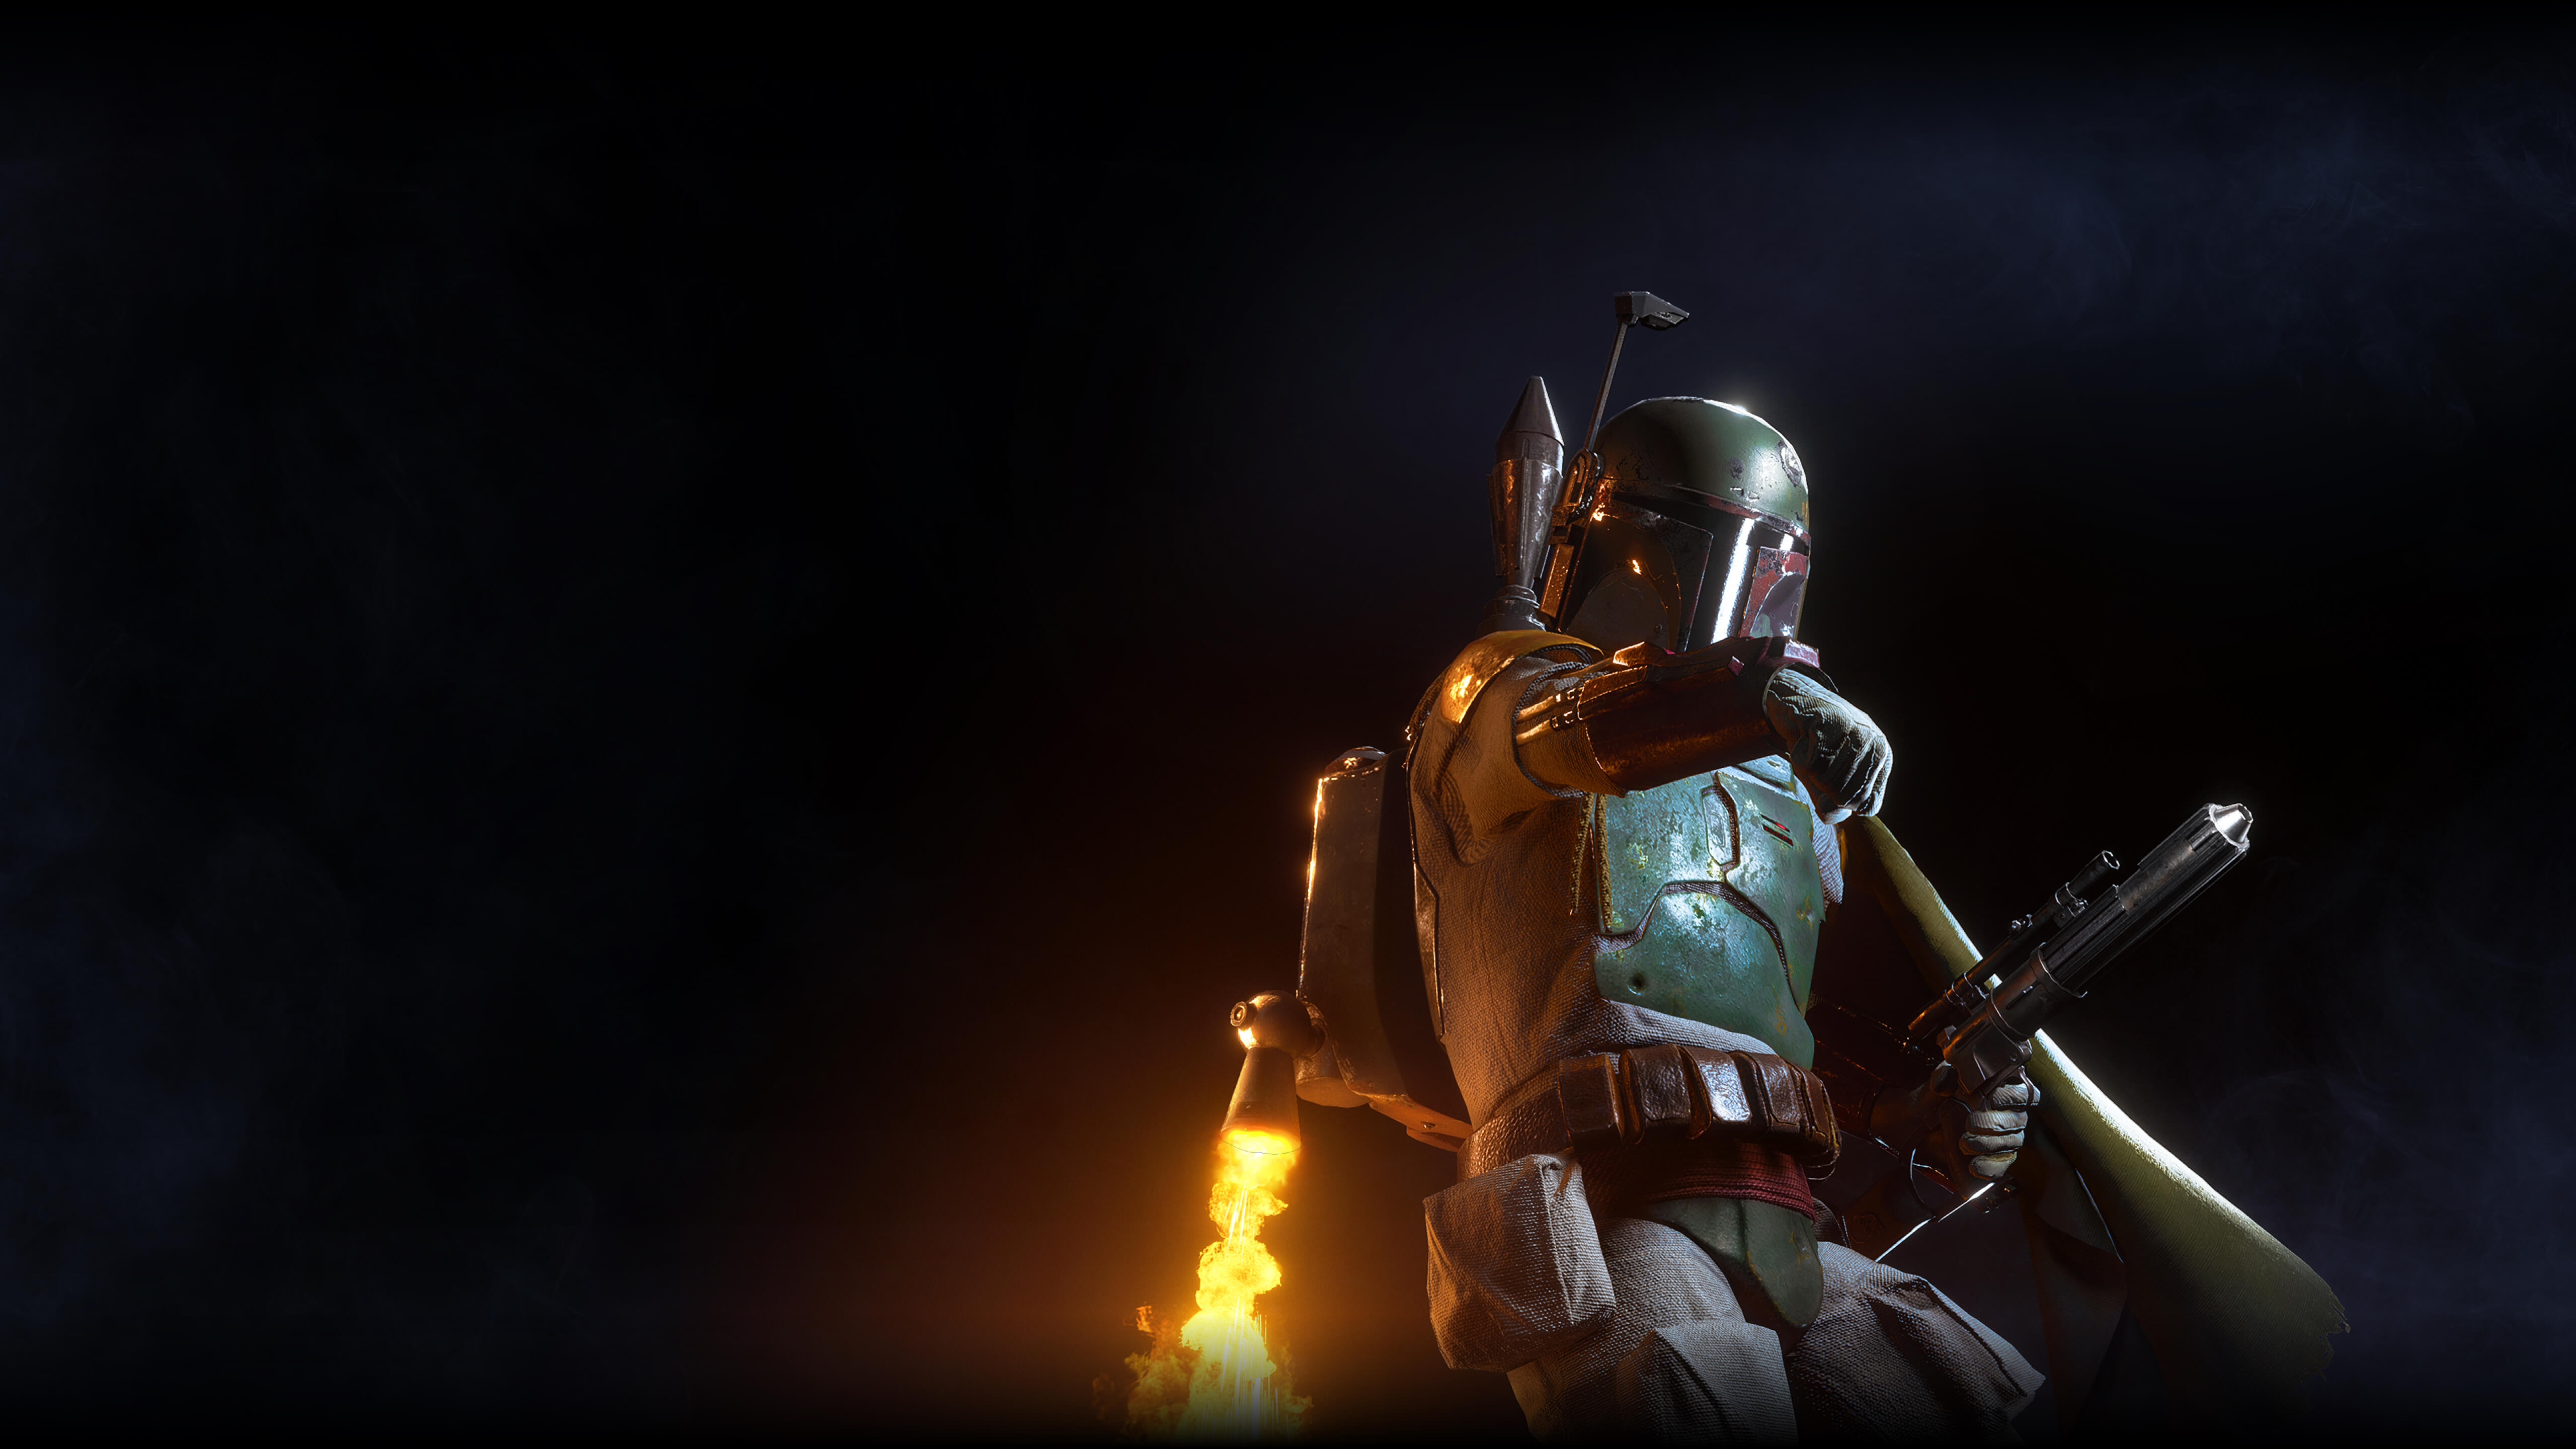 Boba Fett Star Wars Battlefront Ii Hd Games 4k Wallpapers Images Backgrounds Photos And Pictures